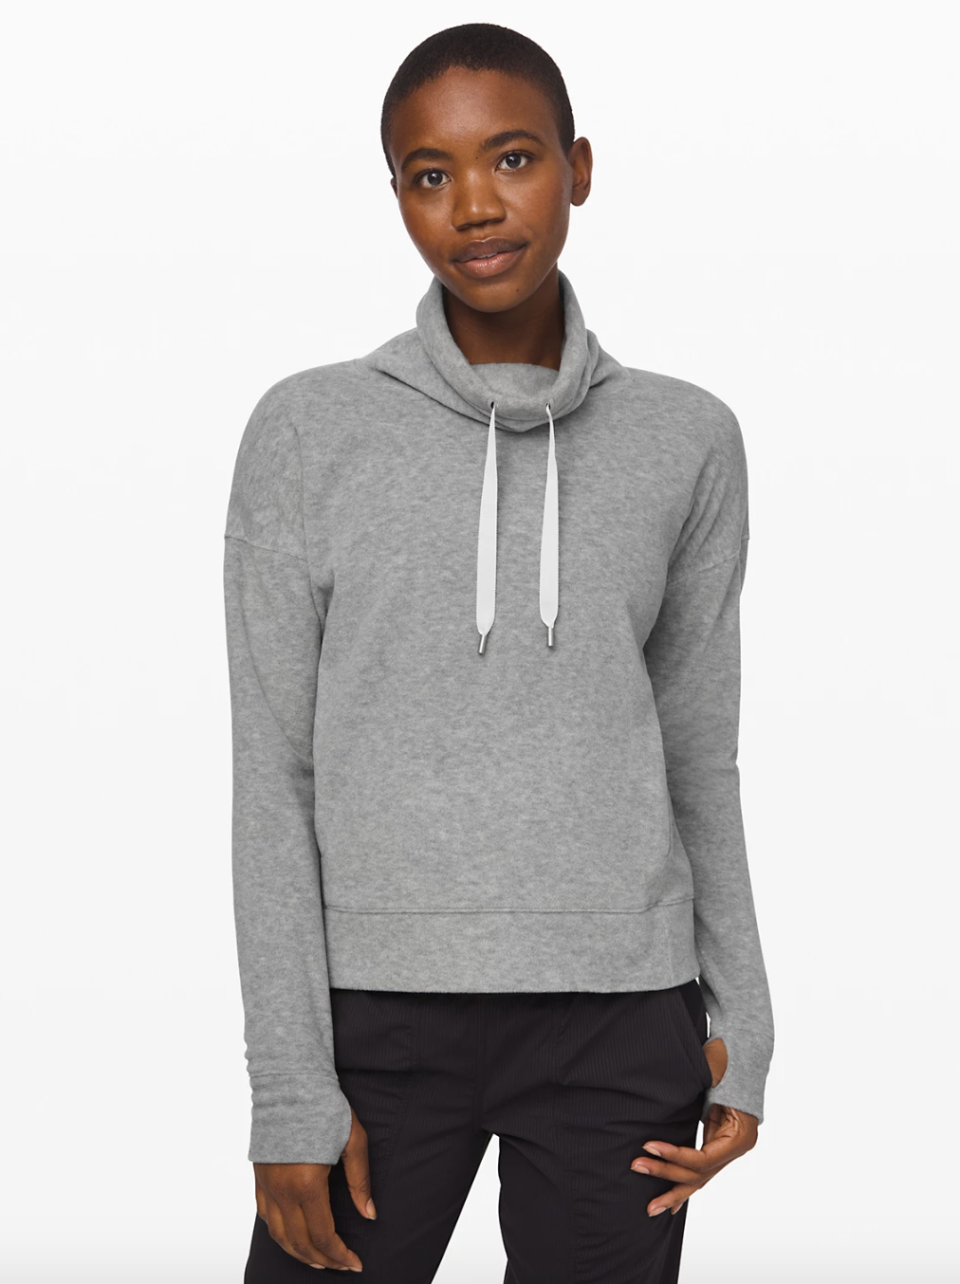 Go Forward Pullover in heathered core light grey